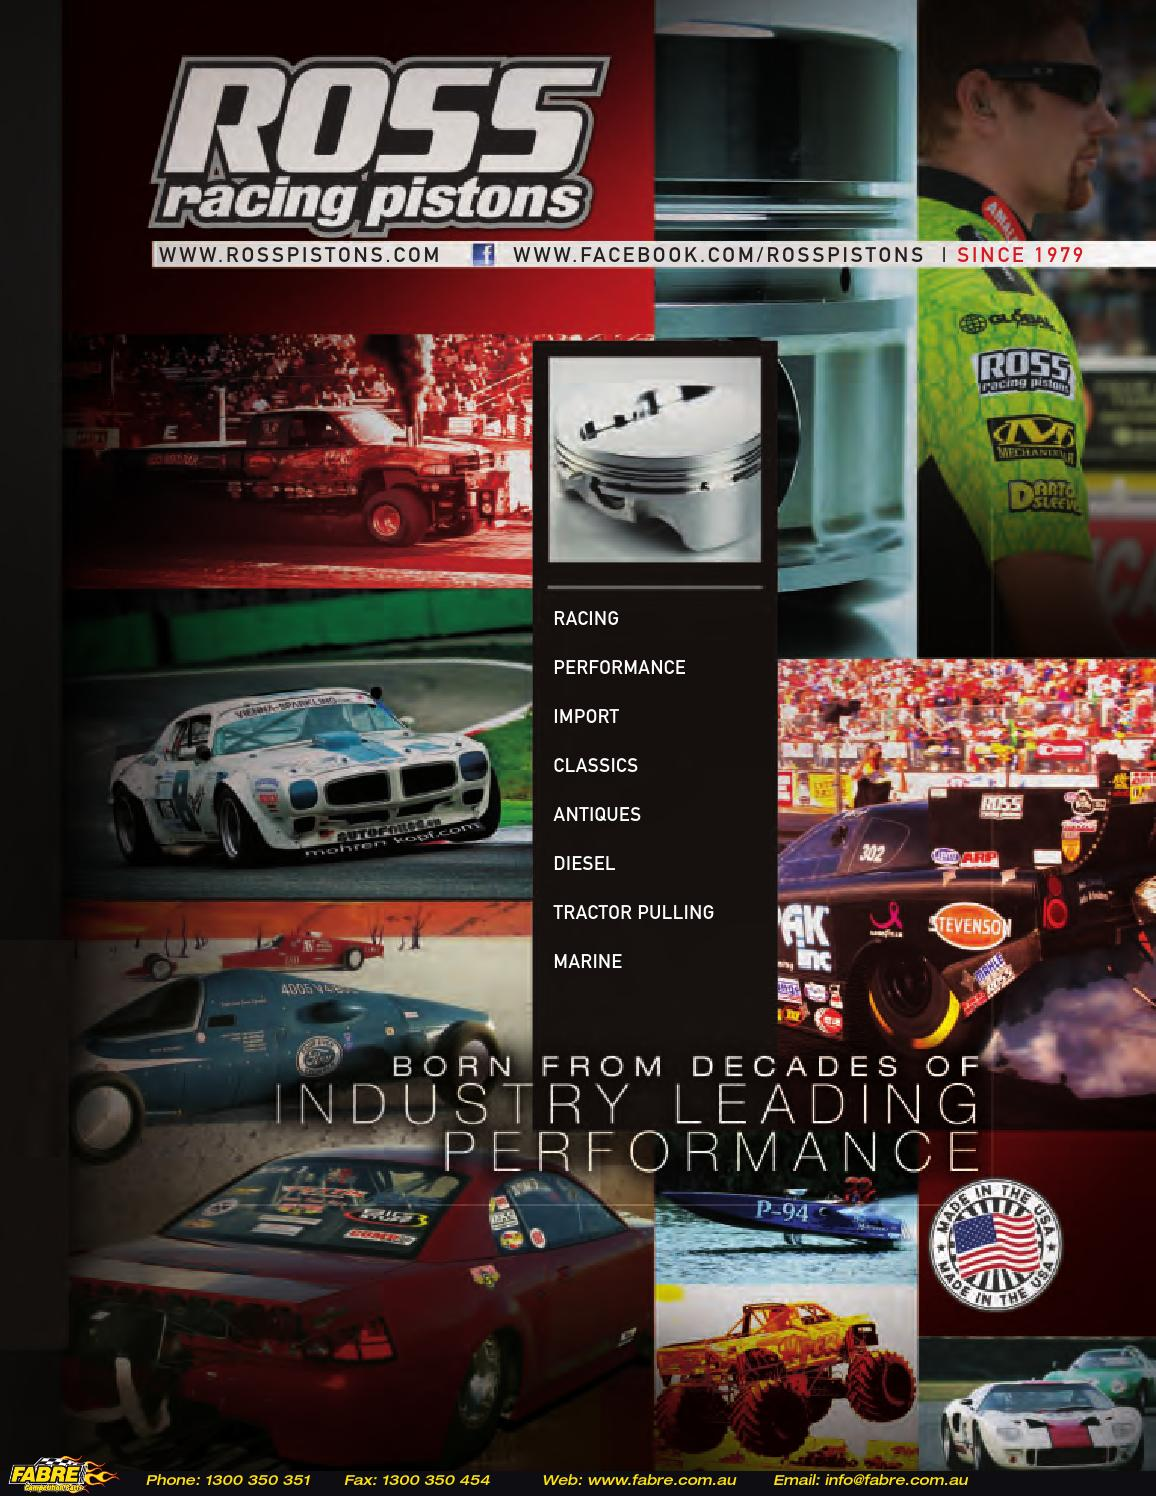 2015 Ross Racing Pistons Catalog by Fabre Australia - issuu